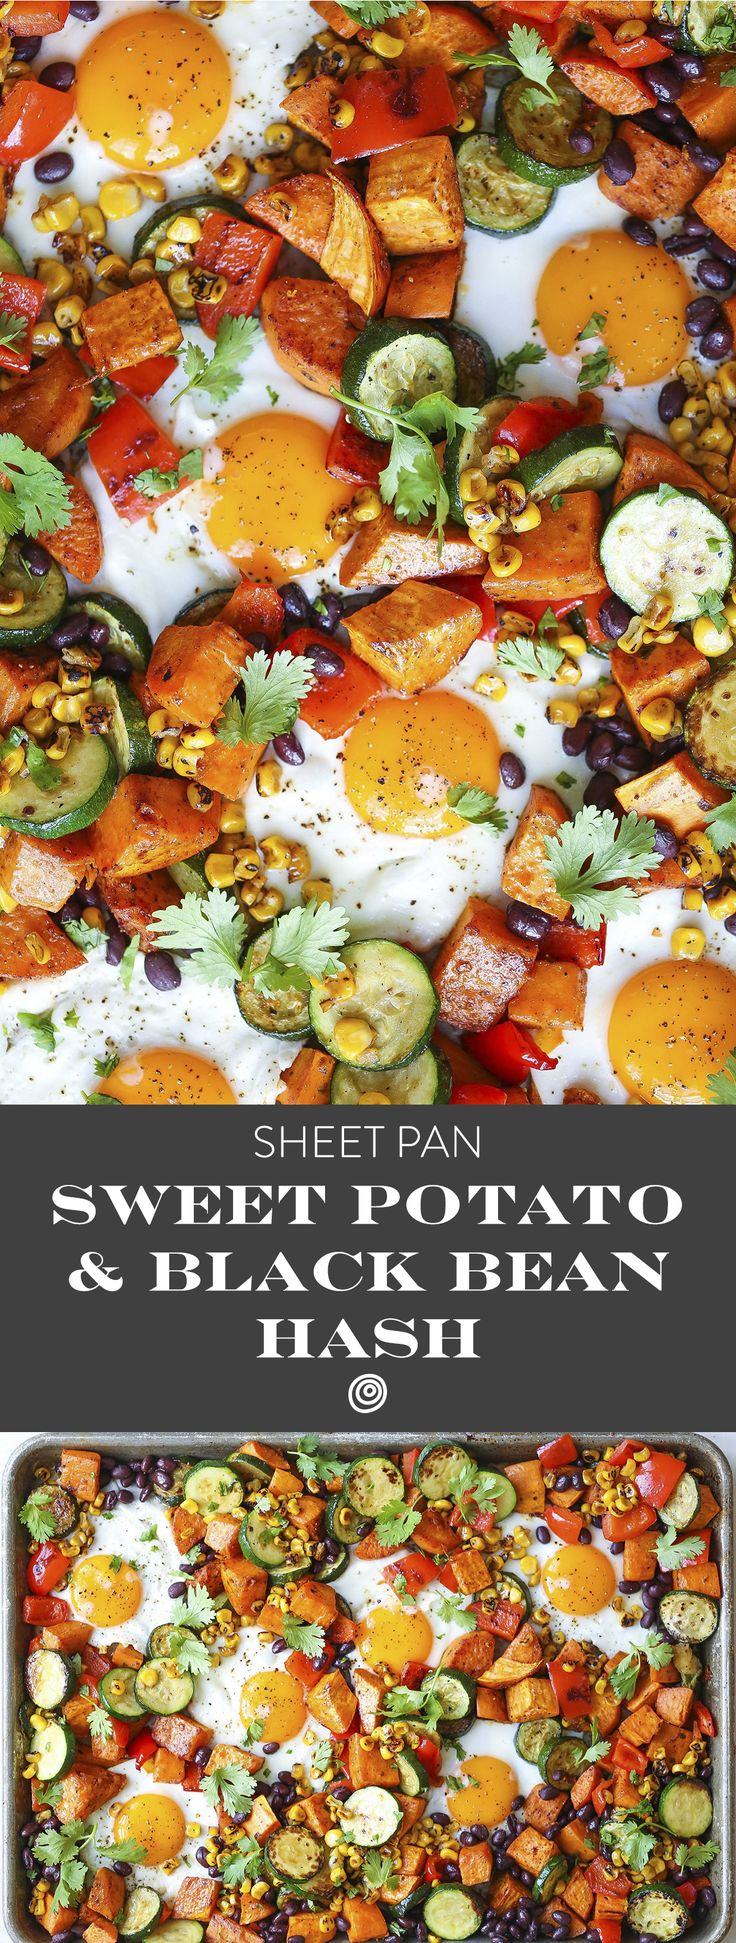 Sheet Pan Sweet Potato and Black Bean Hash Recipe. Sheet pan dinners and suppers are the ultimate in one pan recipes. This quick, EASY, simple dish is great for a weeknight meal or a sunday supper with your family. Think of this hash as your invitation to do dinner for breakfast, or breakfast for dinner. It's fragrantly spiced with cumin, chili, and smoked paprika and finished a tumble of fresh cilantro.